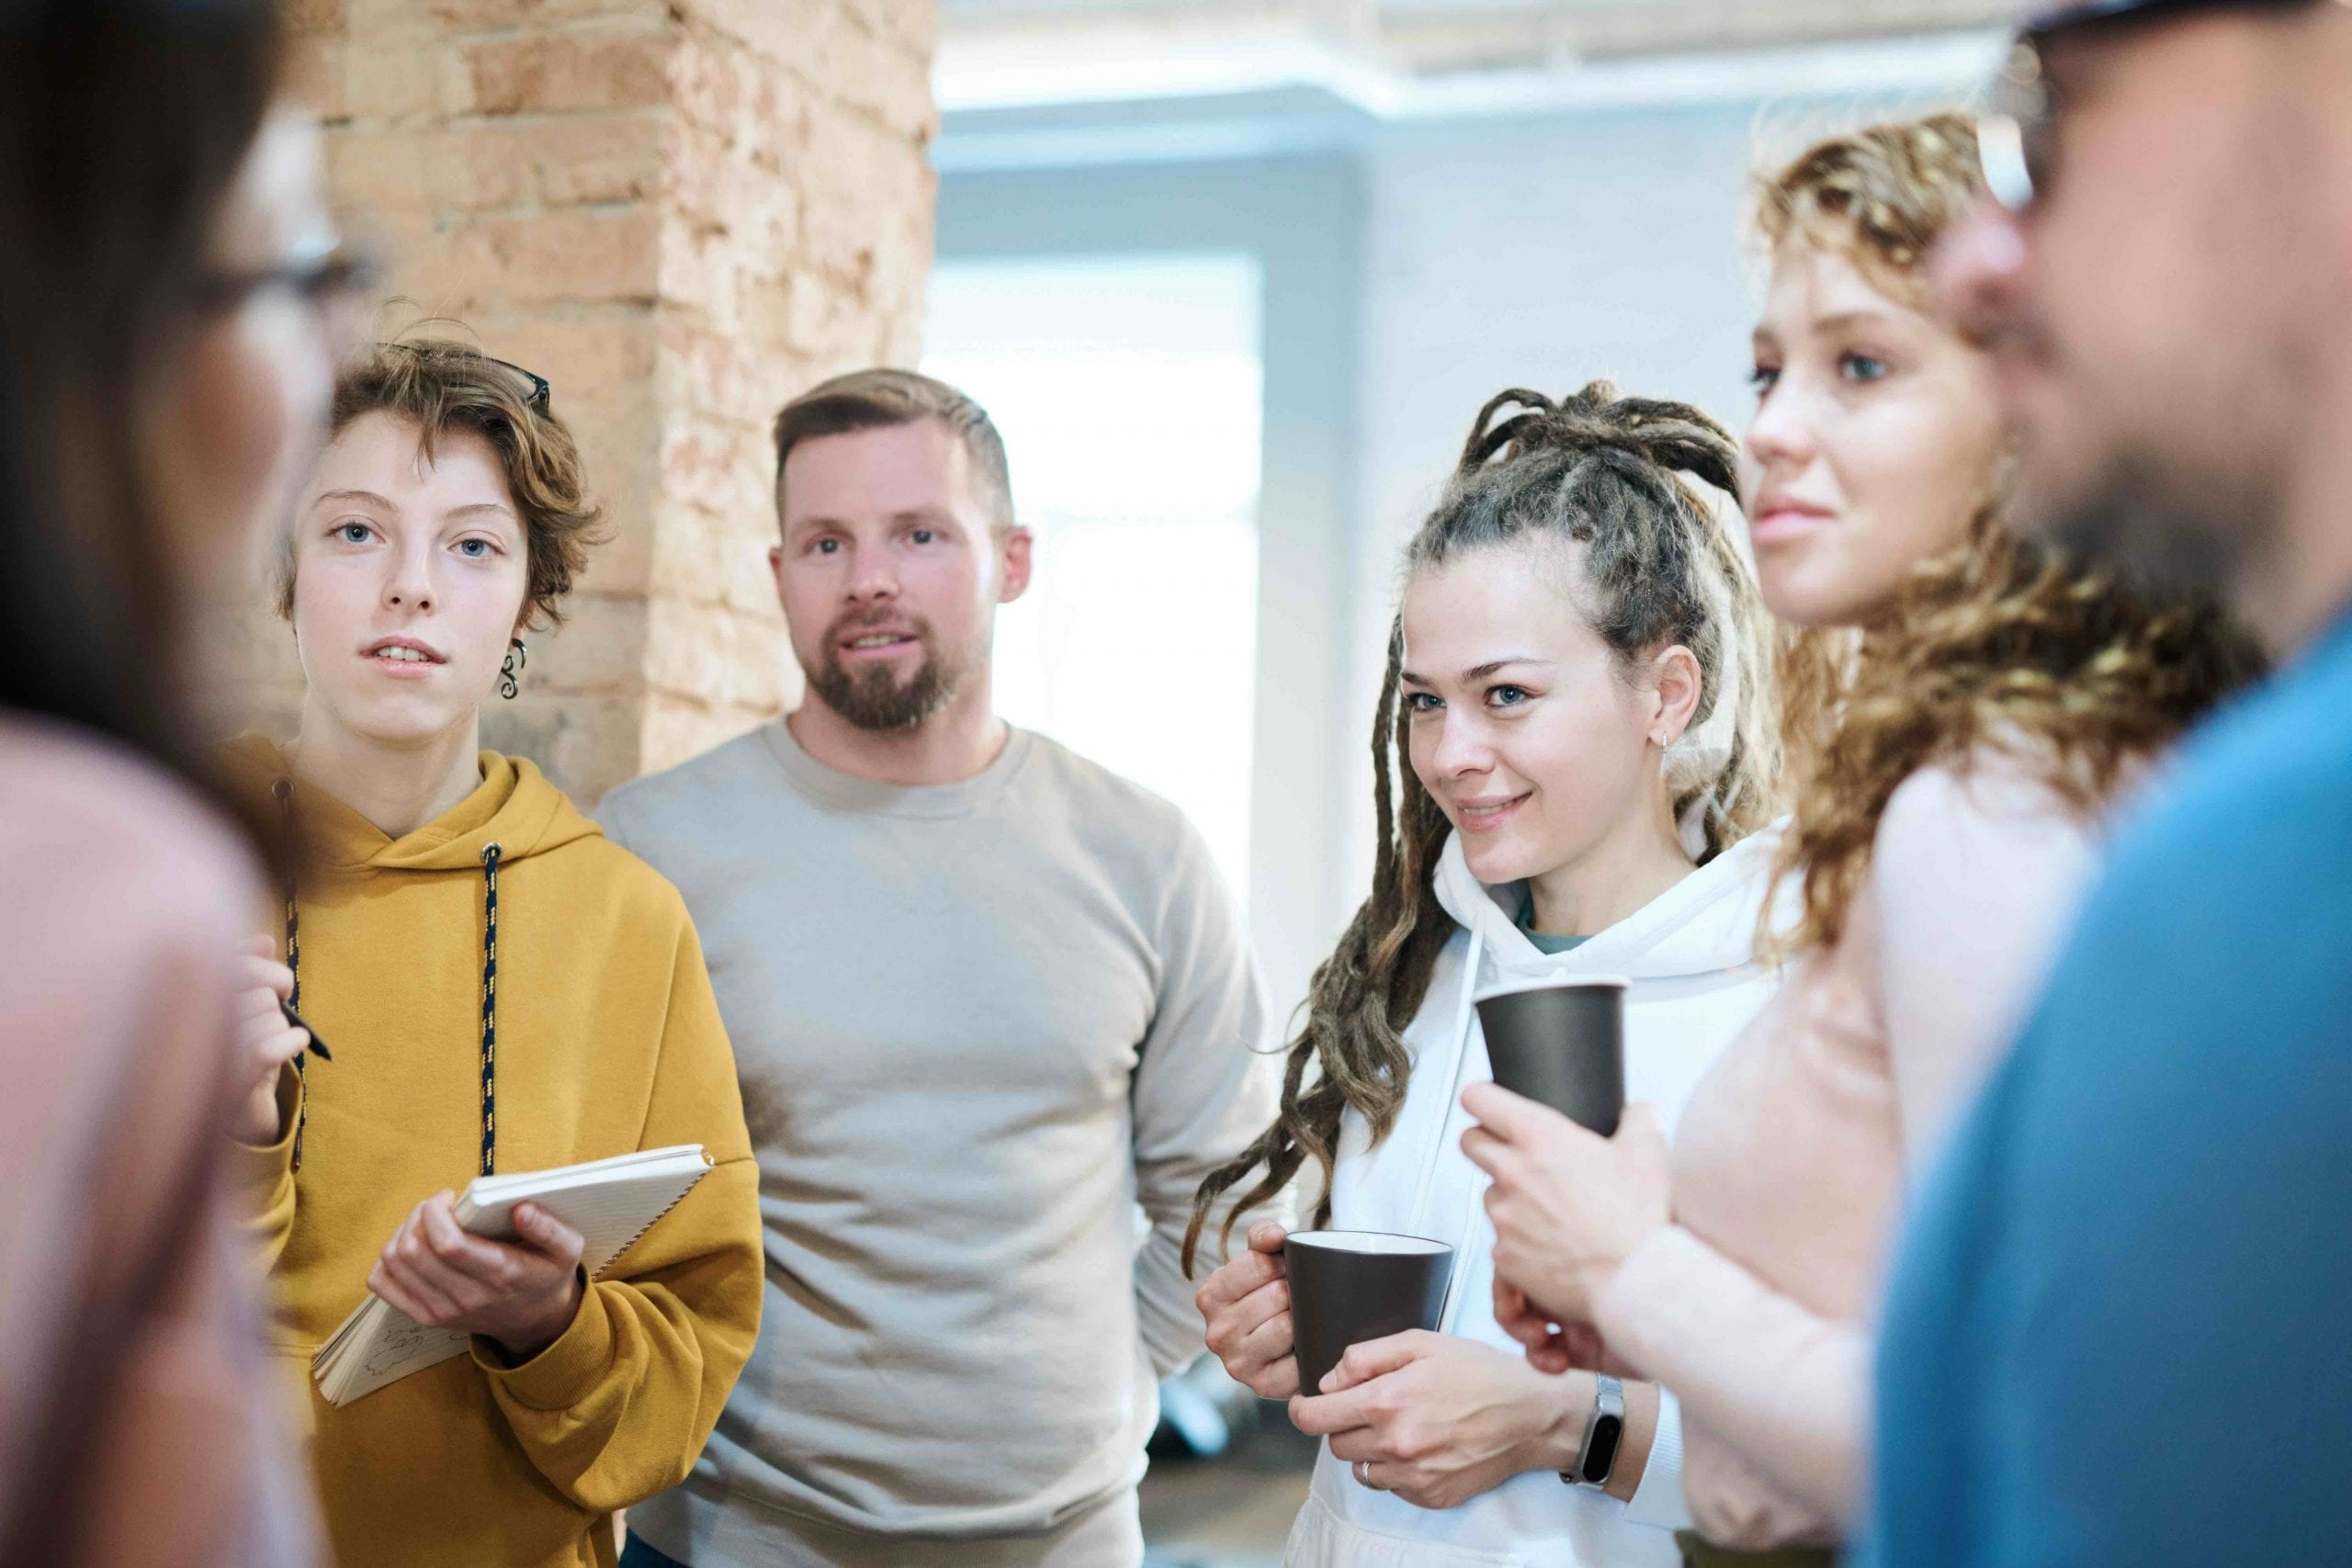 Interpersonal communication skills that can change your life